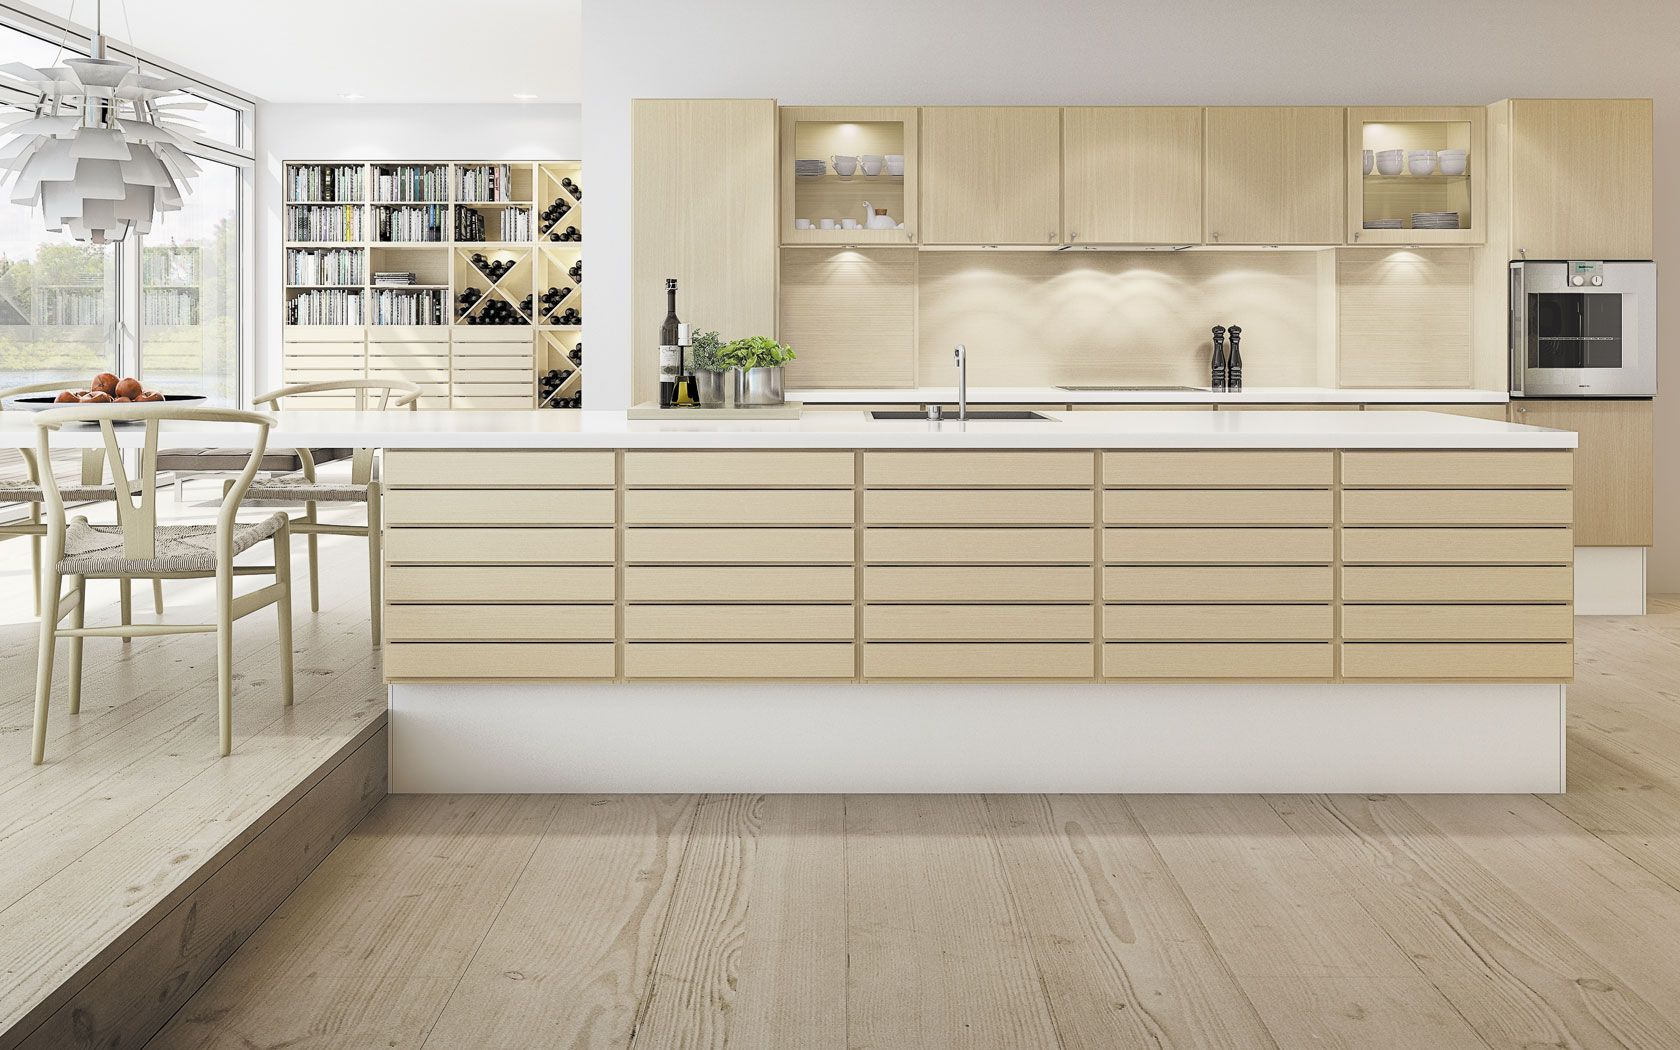 Multiform kitchen   Kitchens&Dining Rooms   Pinterest   Solid wood ...